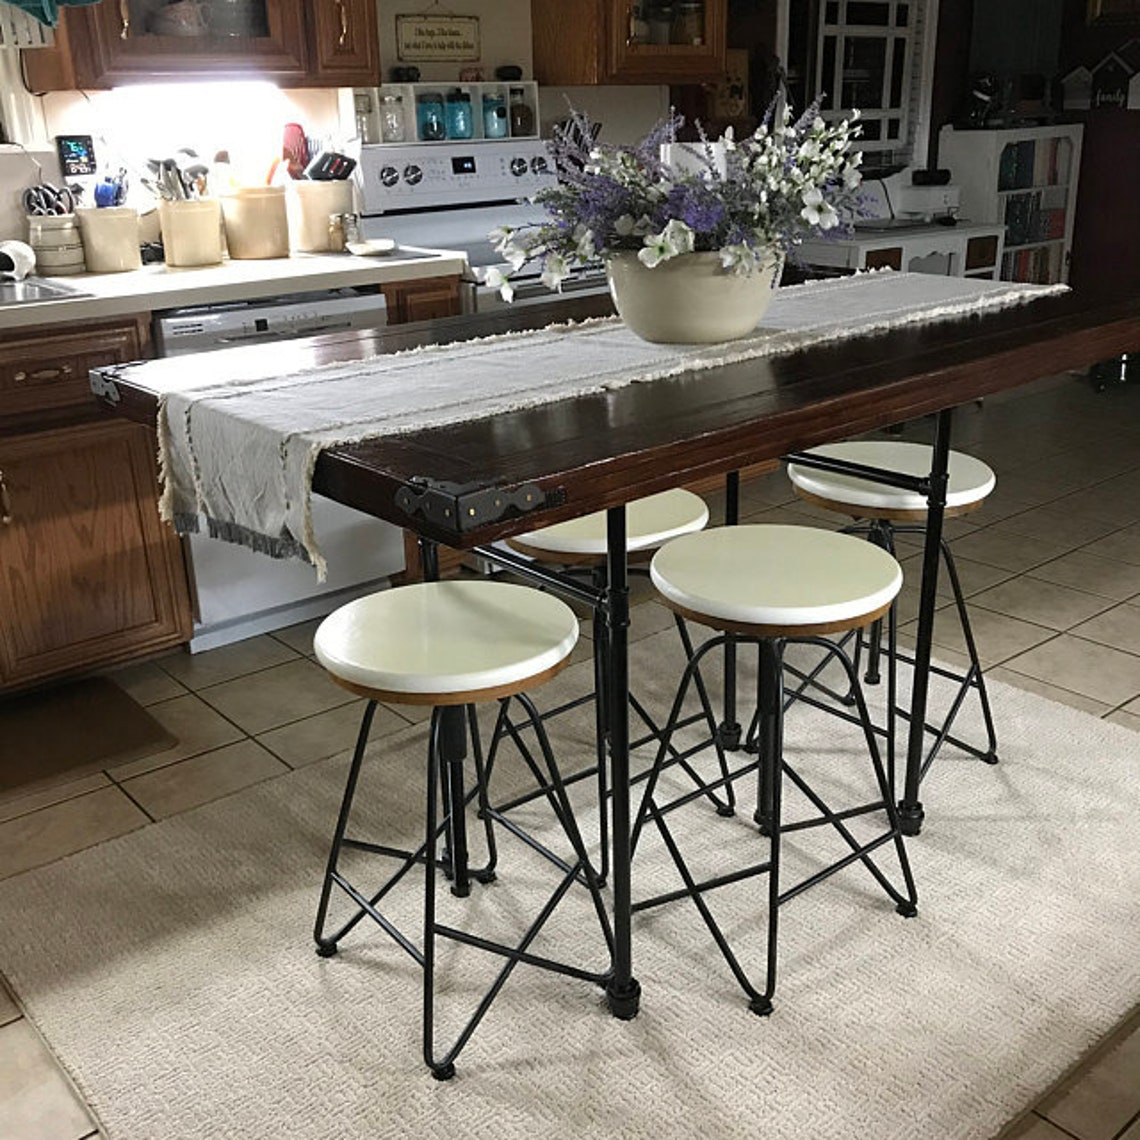 """Table legs 18""""H x 26-27""""W with crossbar 28""""L,Pipe Table Legs ,Industrial Iron Legs,Table Support,,Furniture legs,ndustrial Table Legs"""